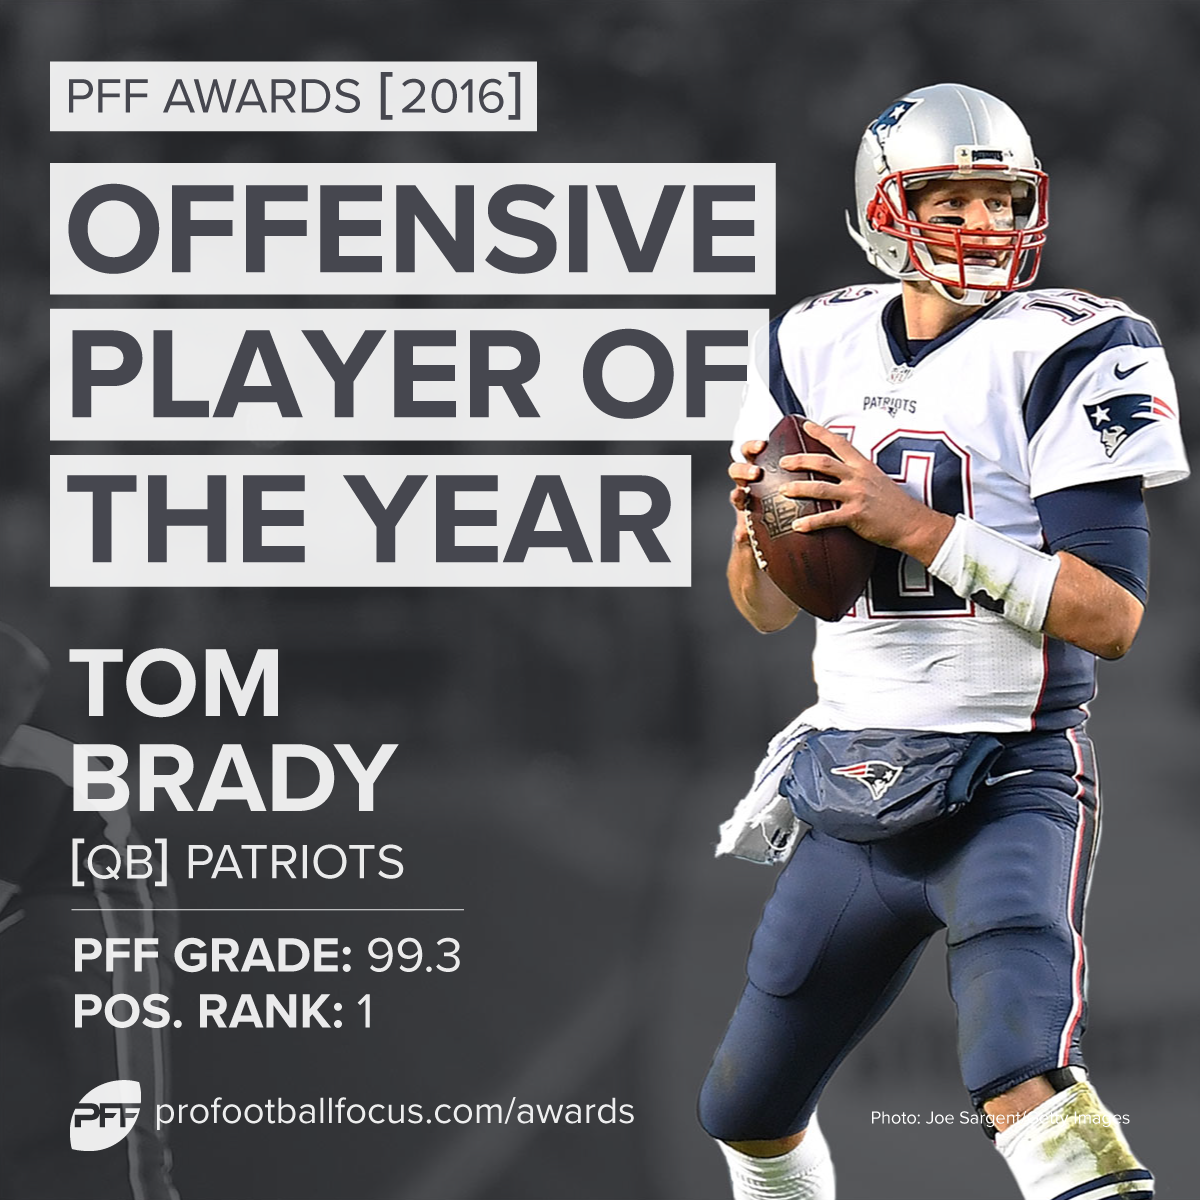 PFF Offensive Player of the Year: Tom Brady